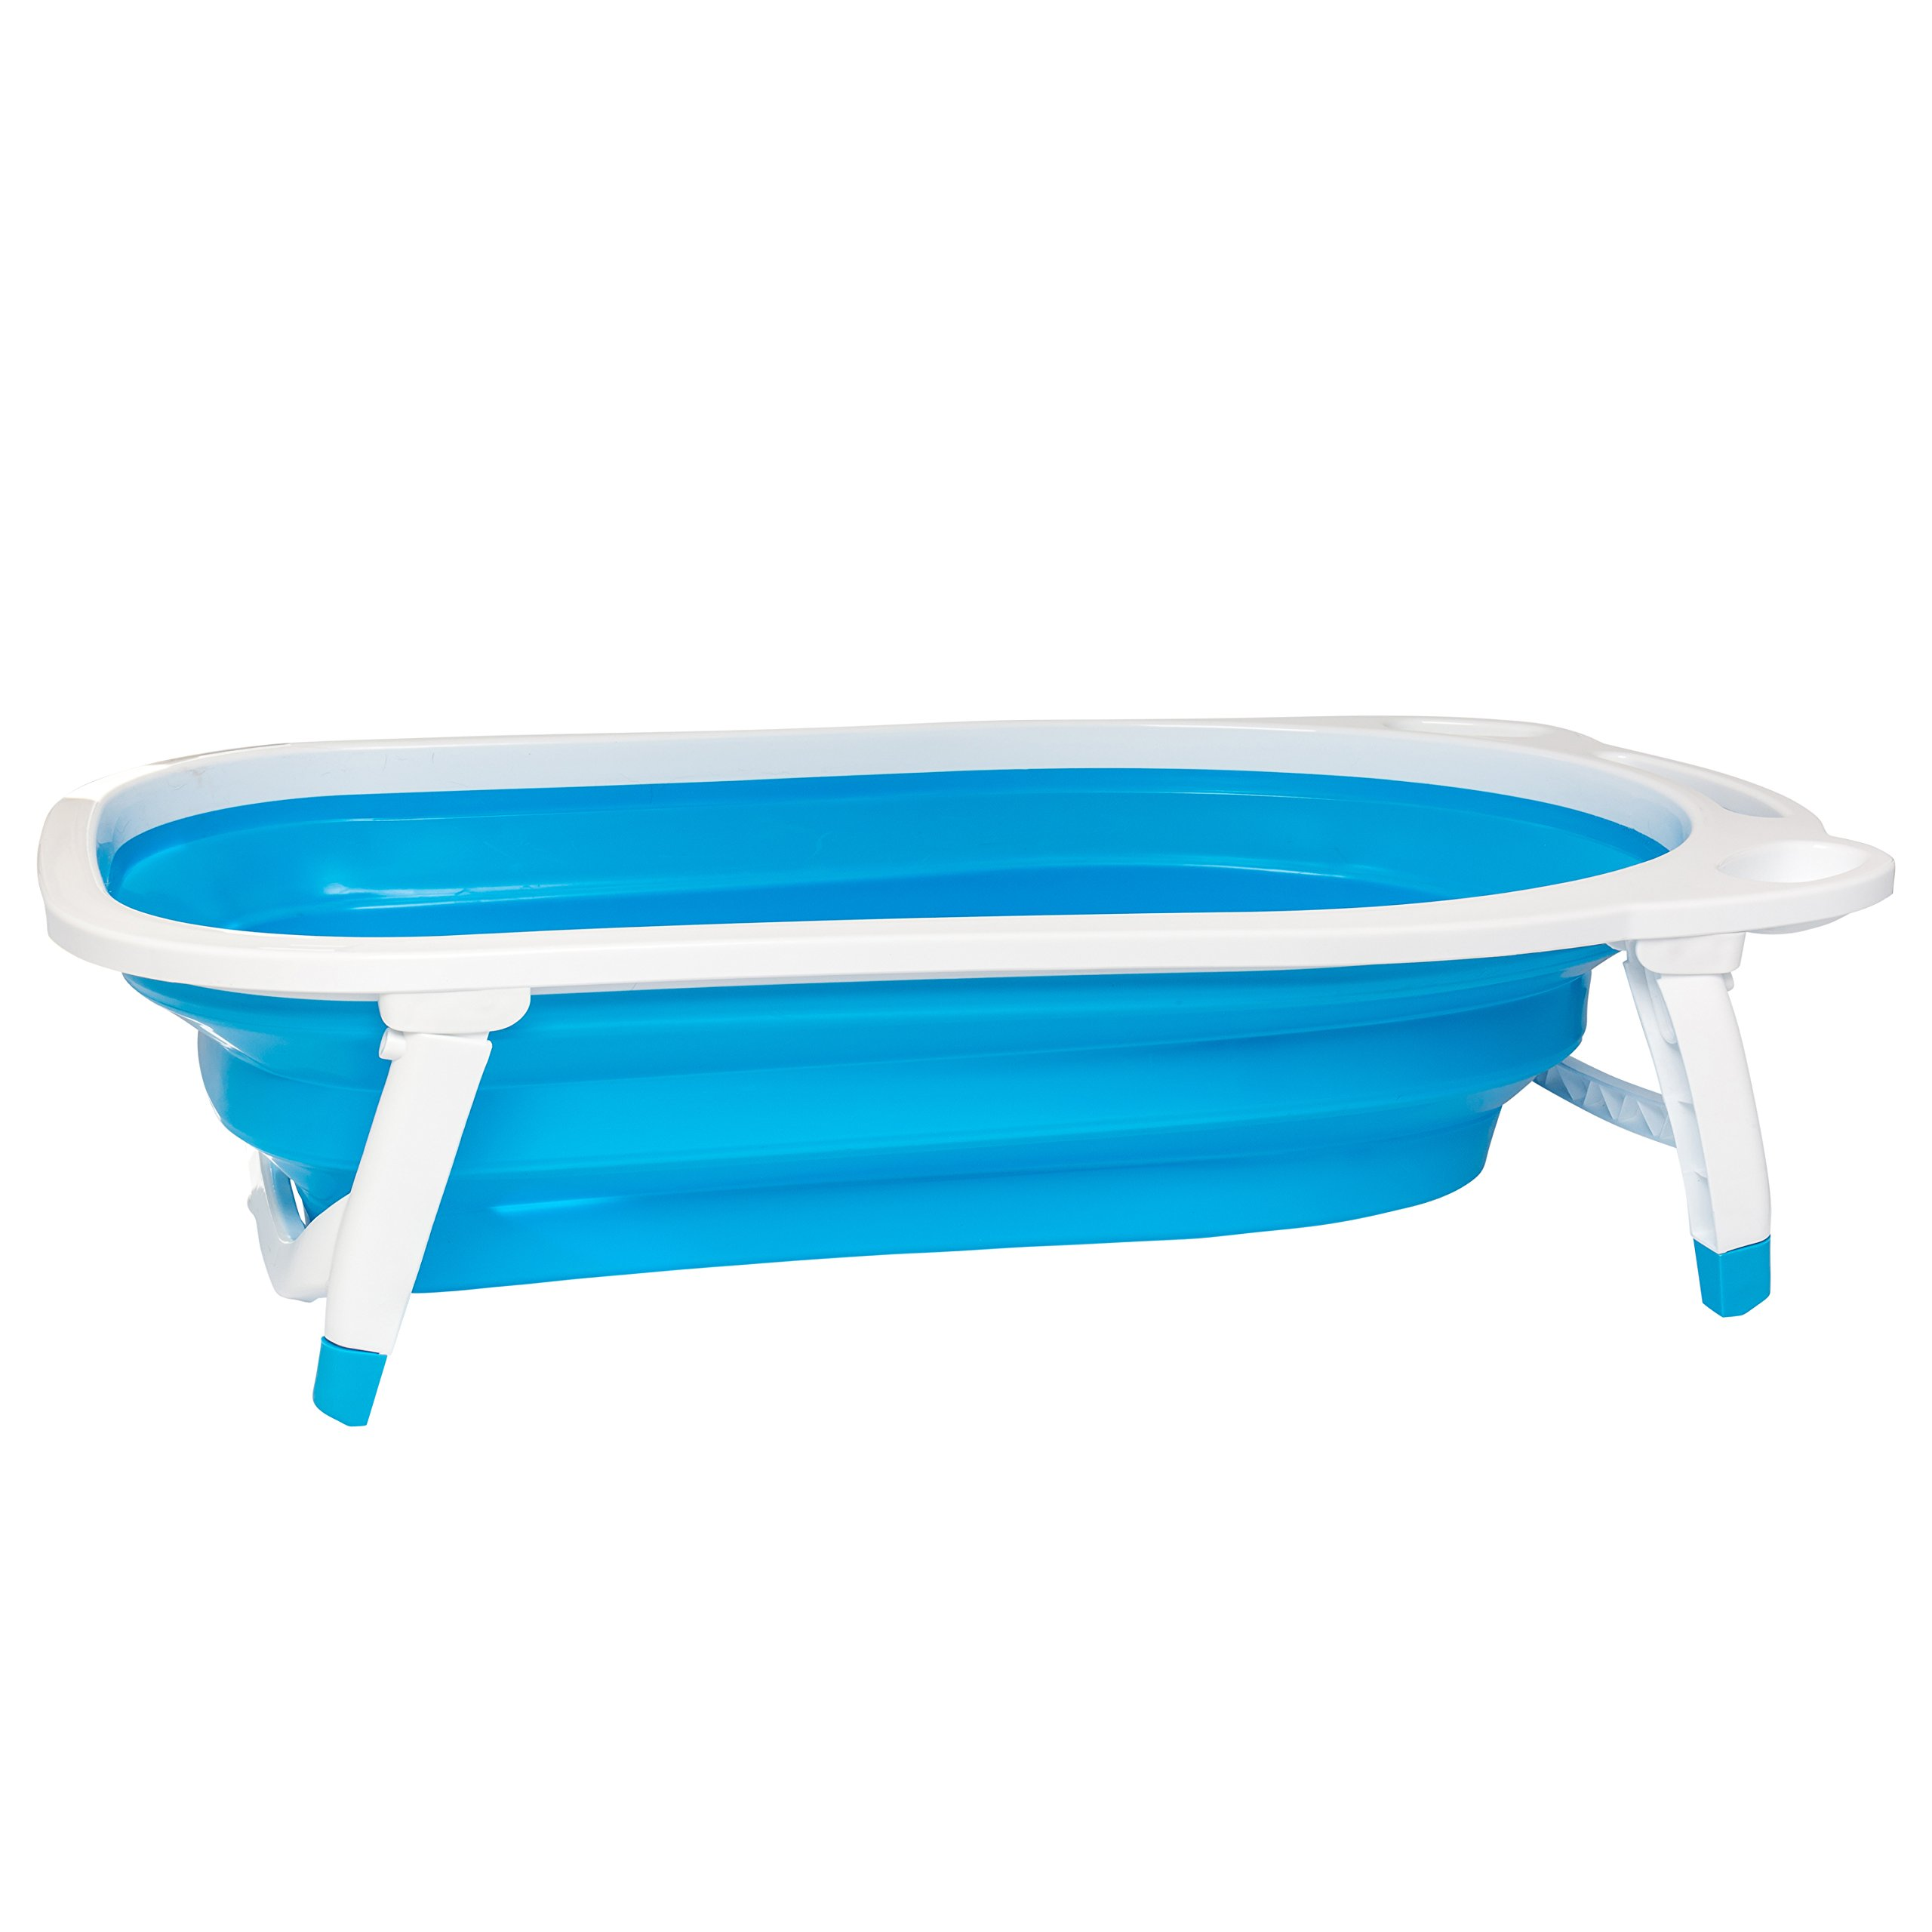 Cheap Dog Bath Tub, find Dog Bath Tub deals on line at Alibaba.com